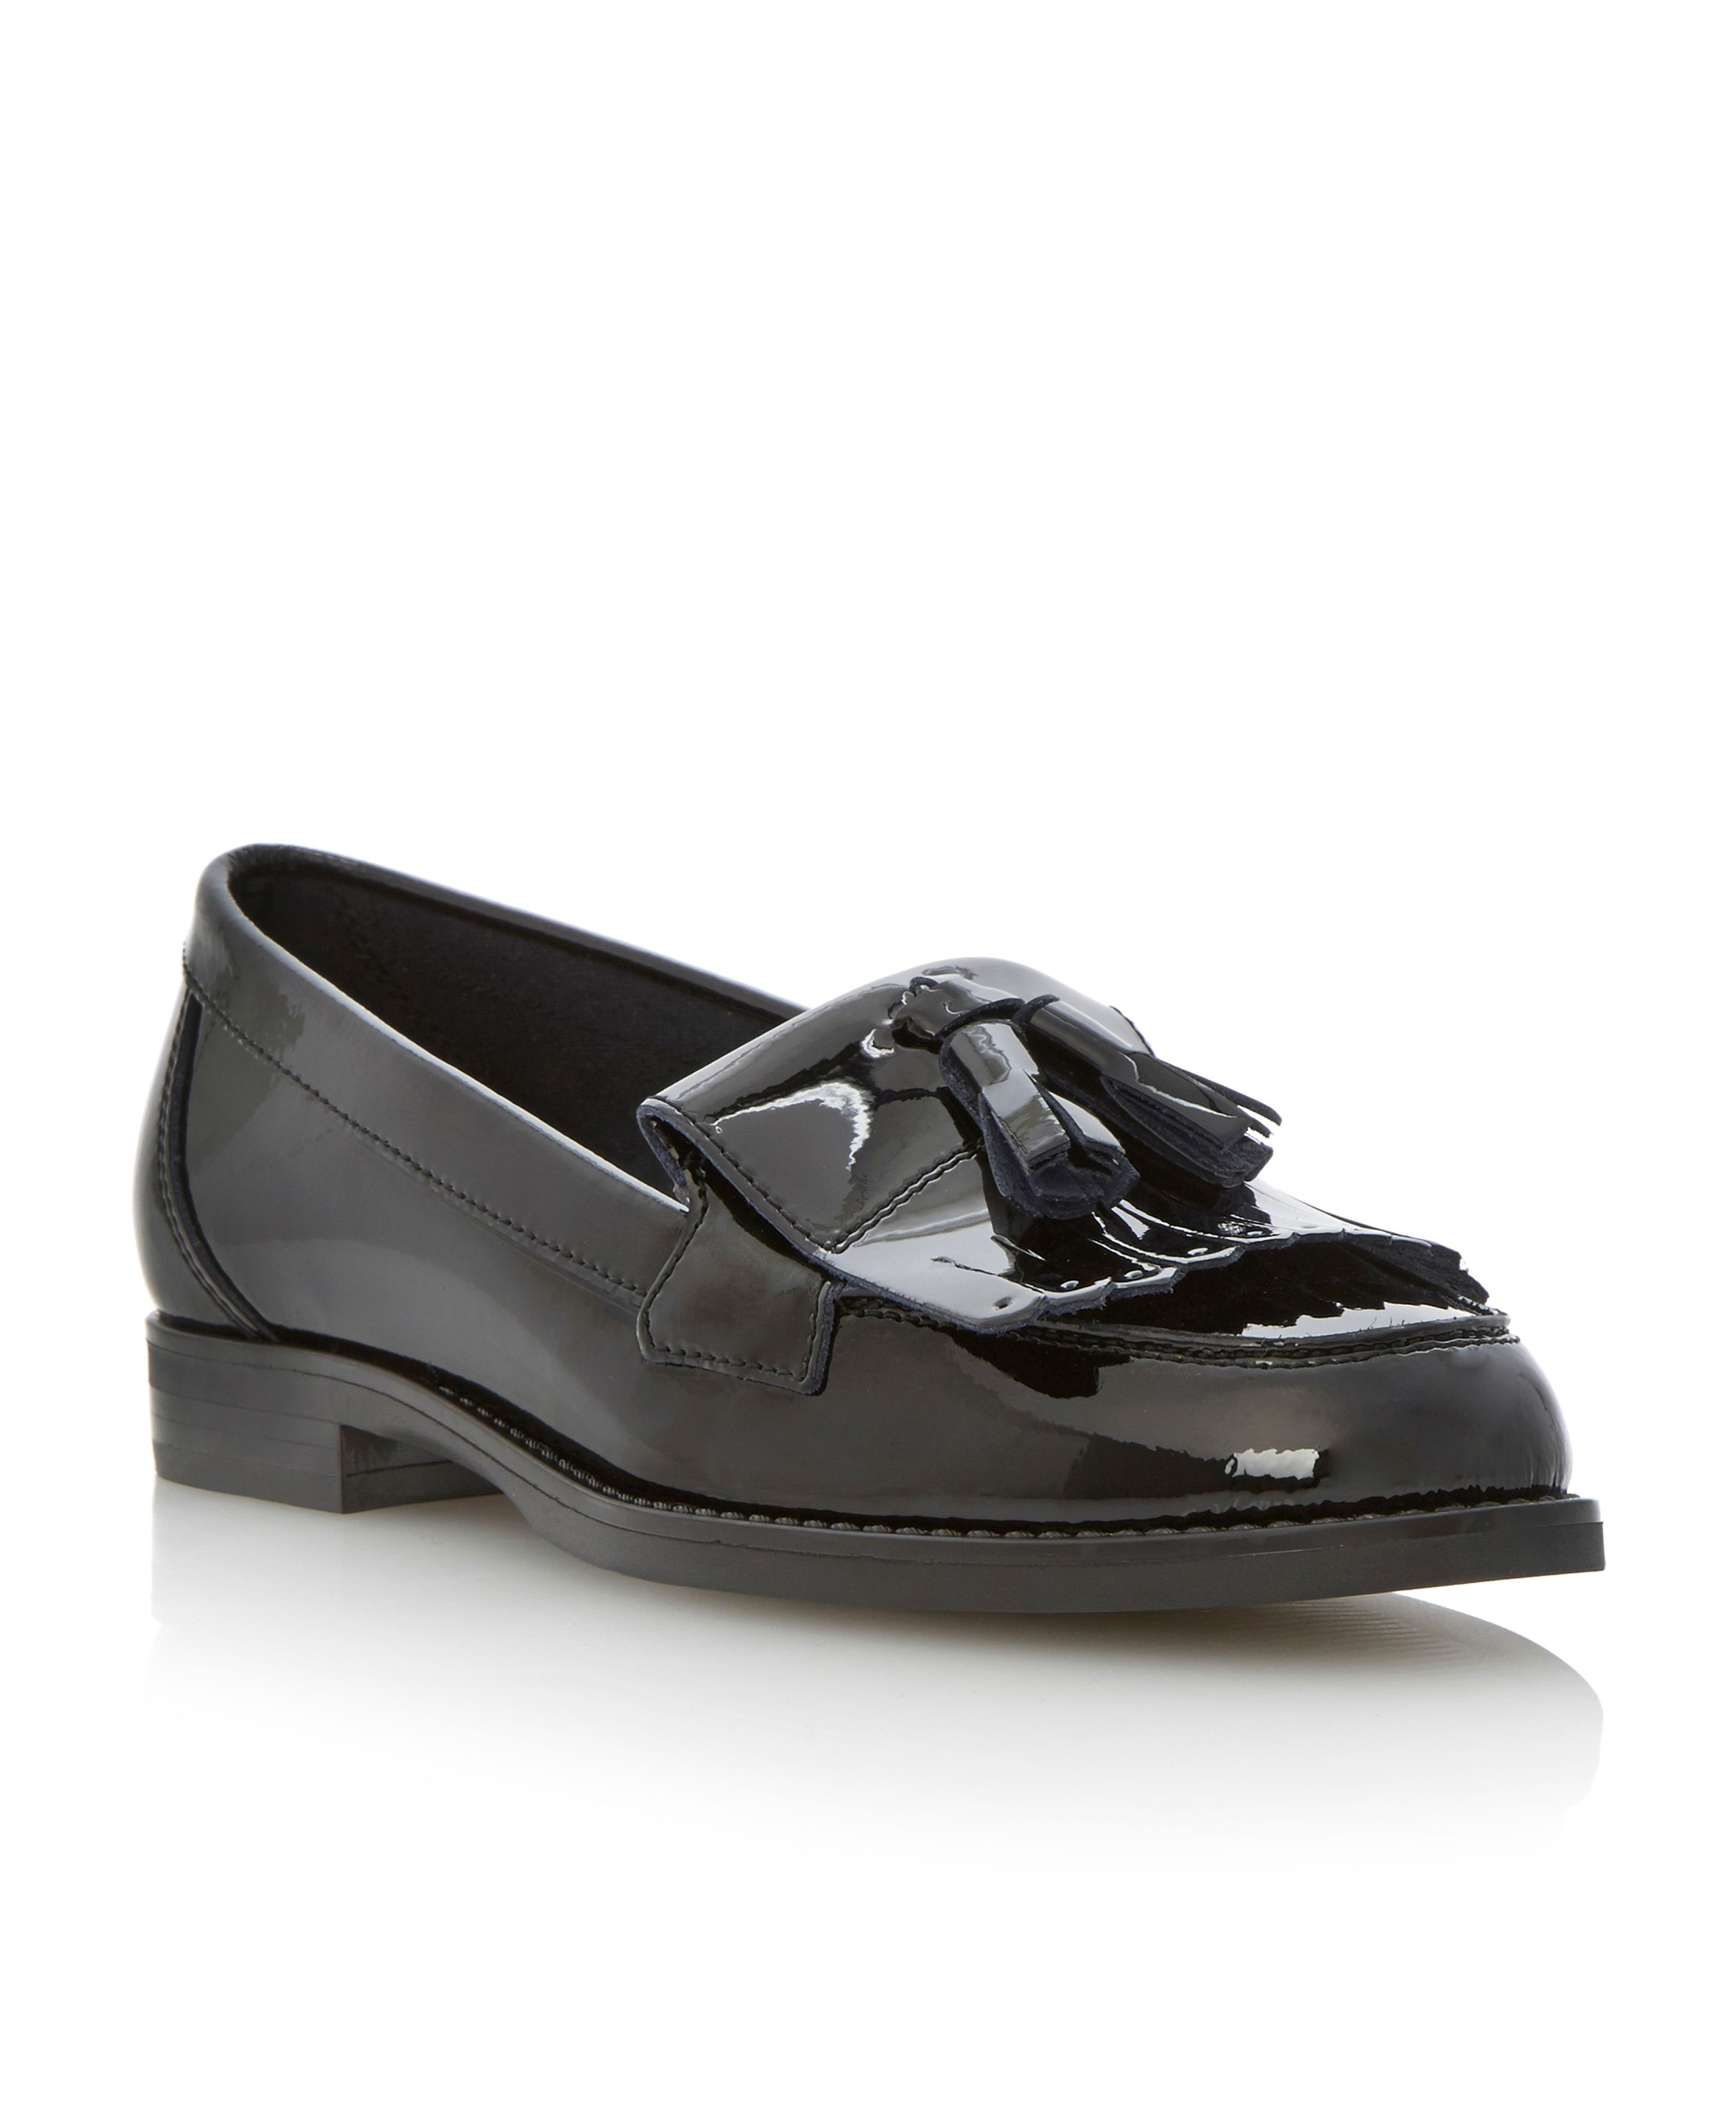 Lennon tassel patent loafer shoes